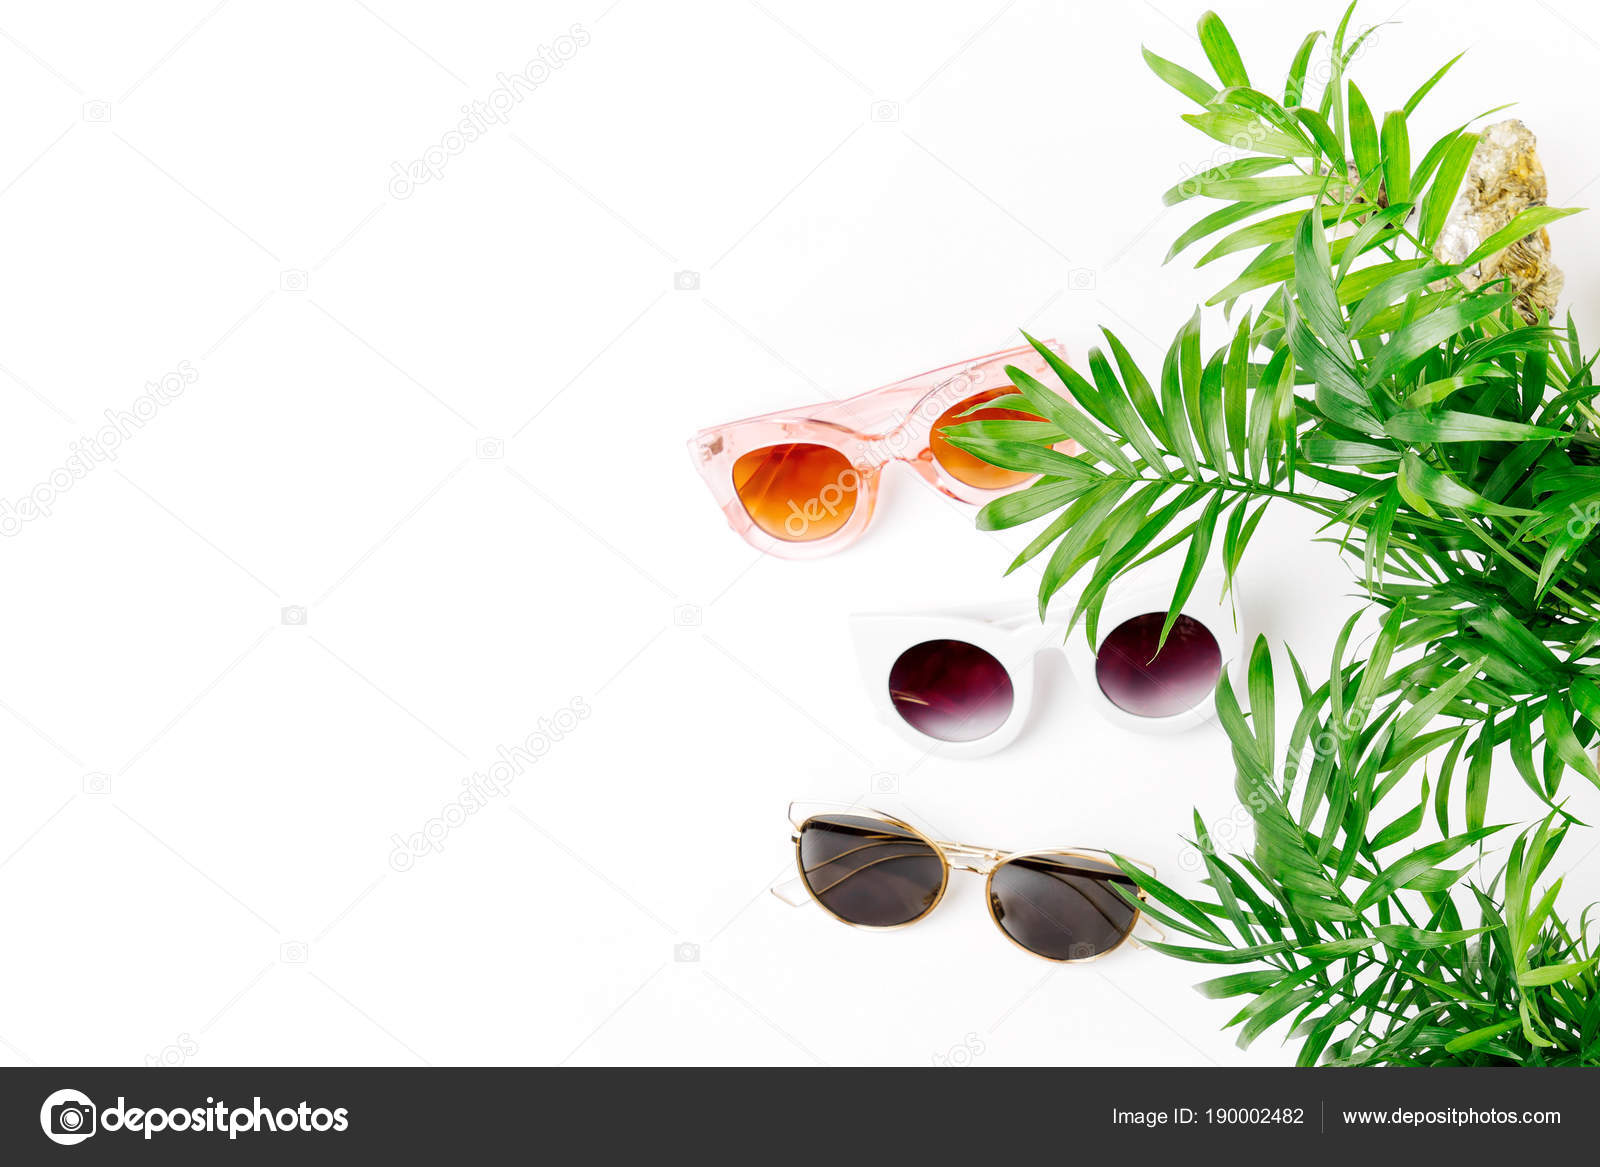 Tropical Leaves Different Types Sunglasses Isolated White Background Stock Photo C Igishevamaria 190002482 Deep dark purple leaves with a contrasting cream edge make this cordyline a colourful and vibrant addition to any tropical garden. depositphotos